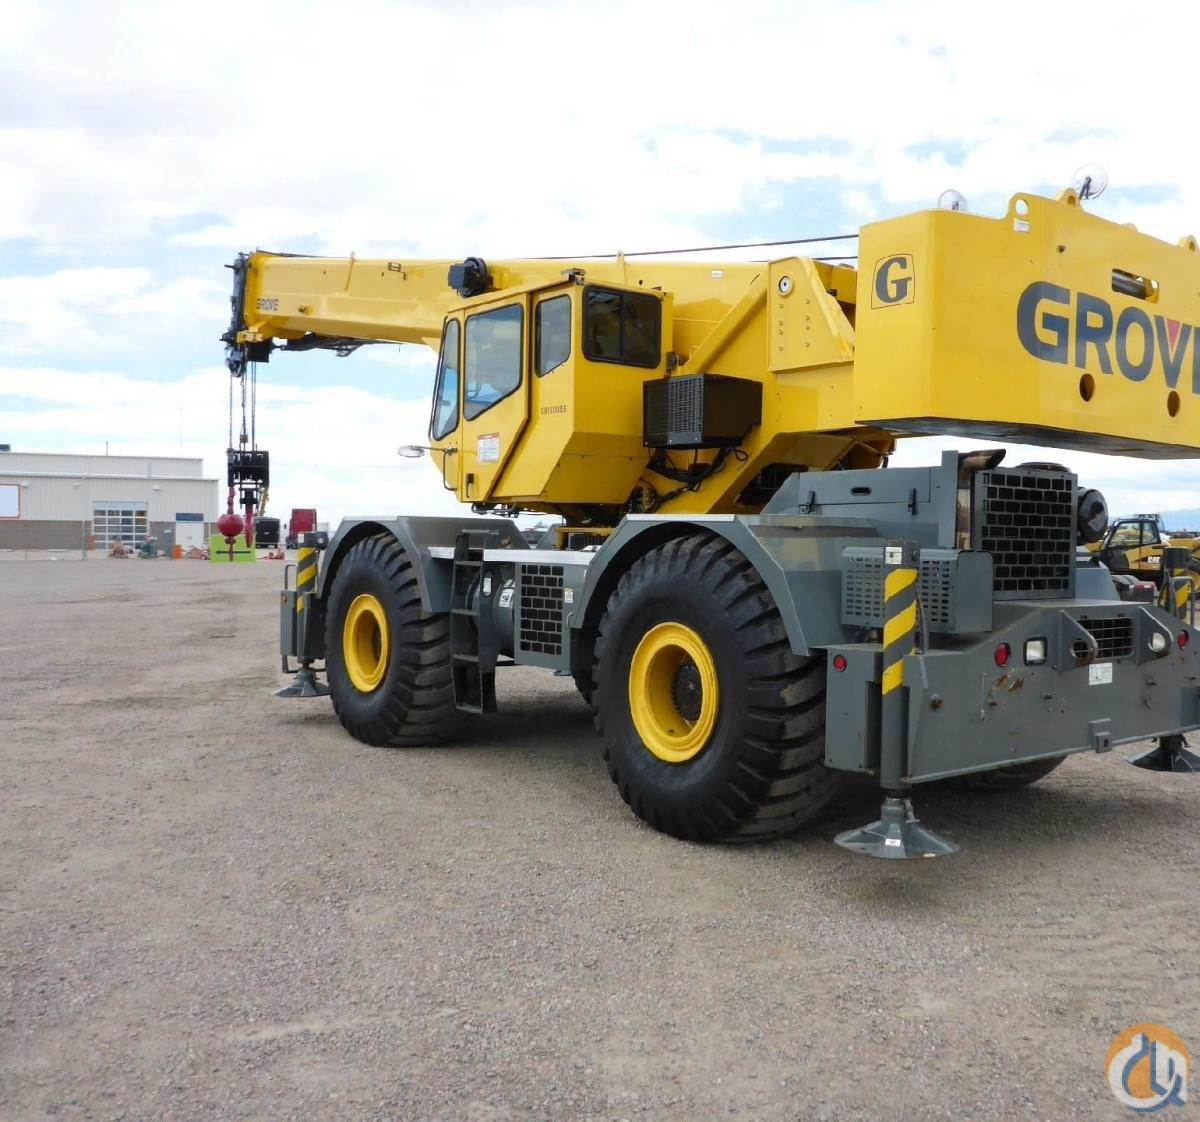 2008 GROVE RT700E Crane for Sale in Lewisville Texas on CraneNetwork.com